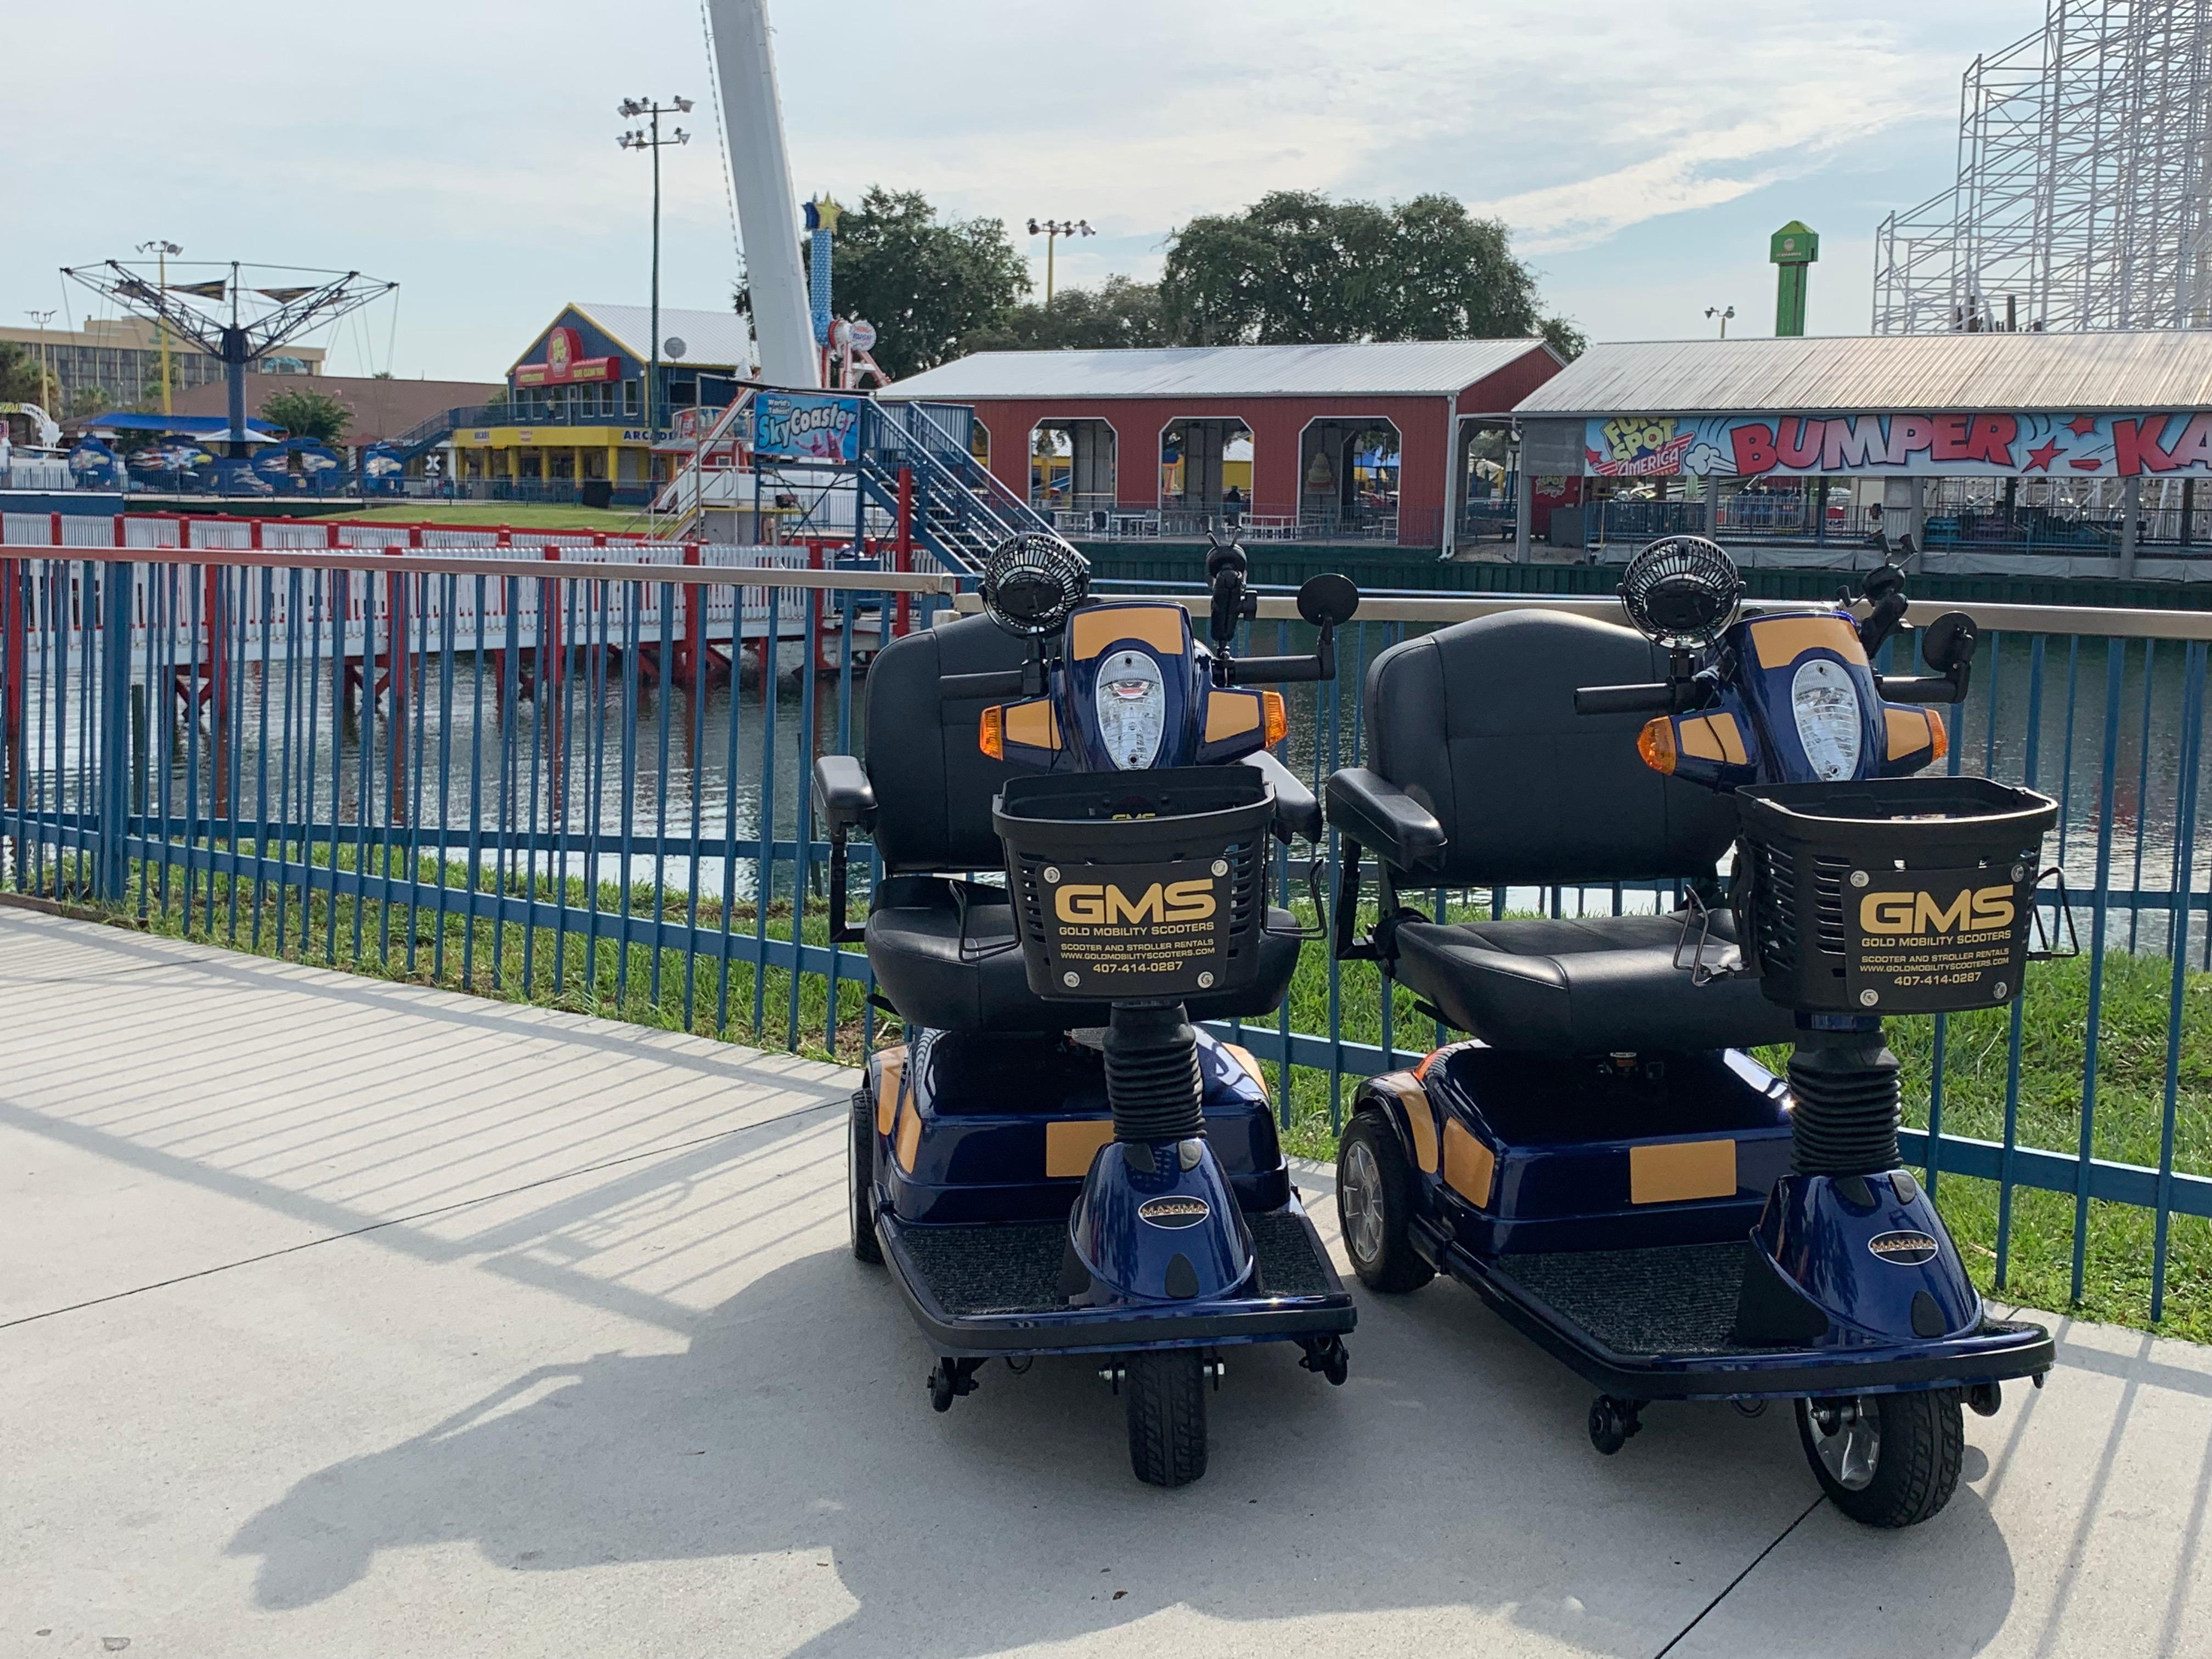 Theme Park approved scooter rentals Orlando by Gold Mobility Scooters. We sell and rent top of the line Pride Mobility Scooters in our rent a scooter line. Theme Parks and Orlando Florida Area scooter rentals. Best rental Prices, Premium brand new scooters for rent, Free Delivery and Pickup, Free Damage Waver, Free Accessories, and Custom upgrades. 5 star rated scooter rental company. Scooter Rental info at https://goldmobilityscooters.com or Call us at 407-414-0287